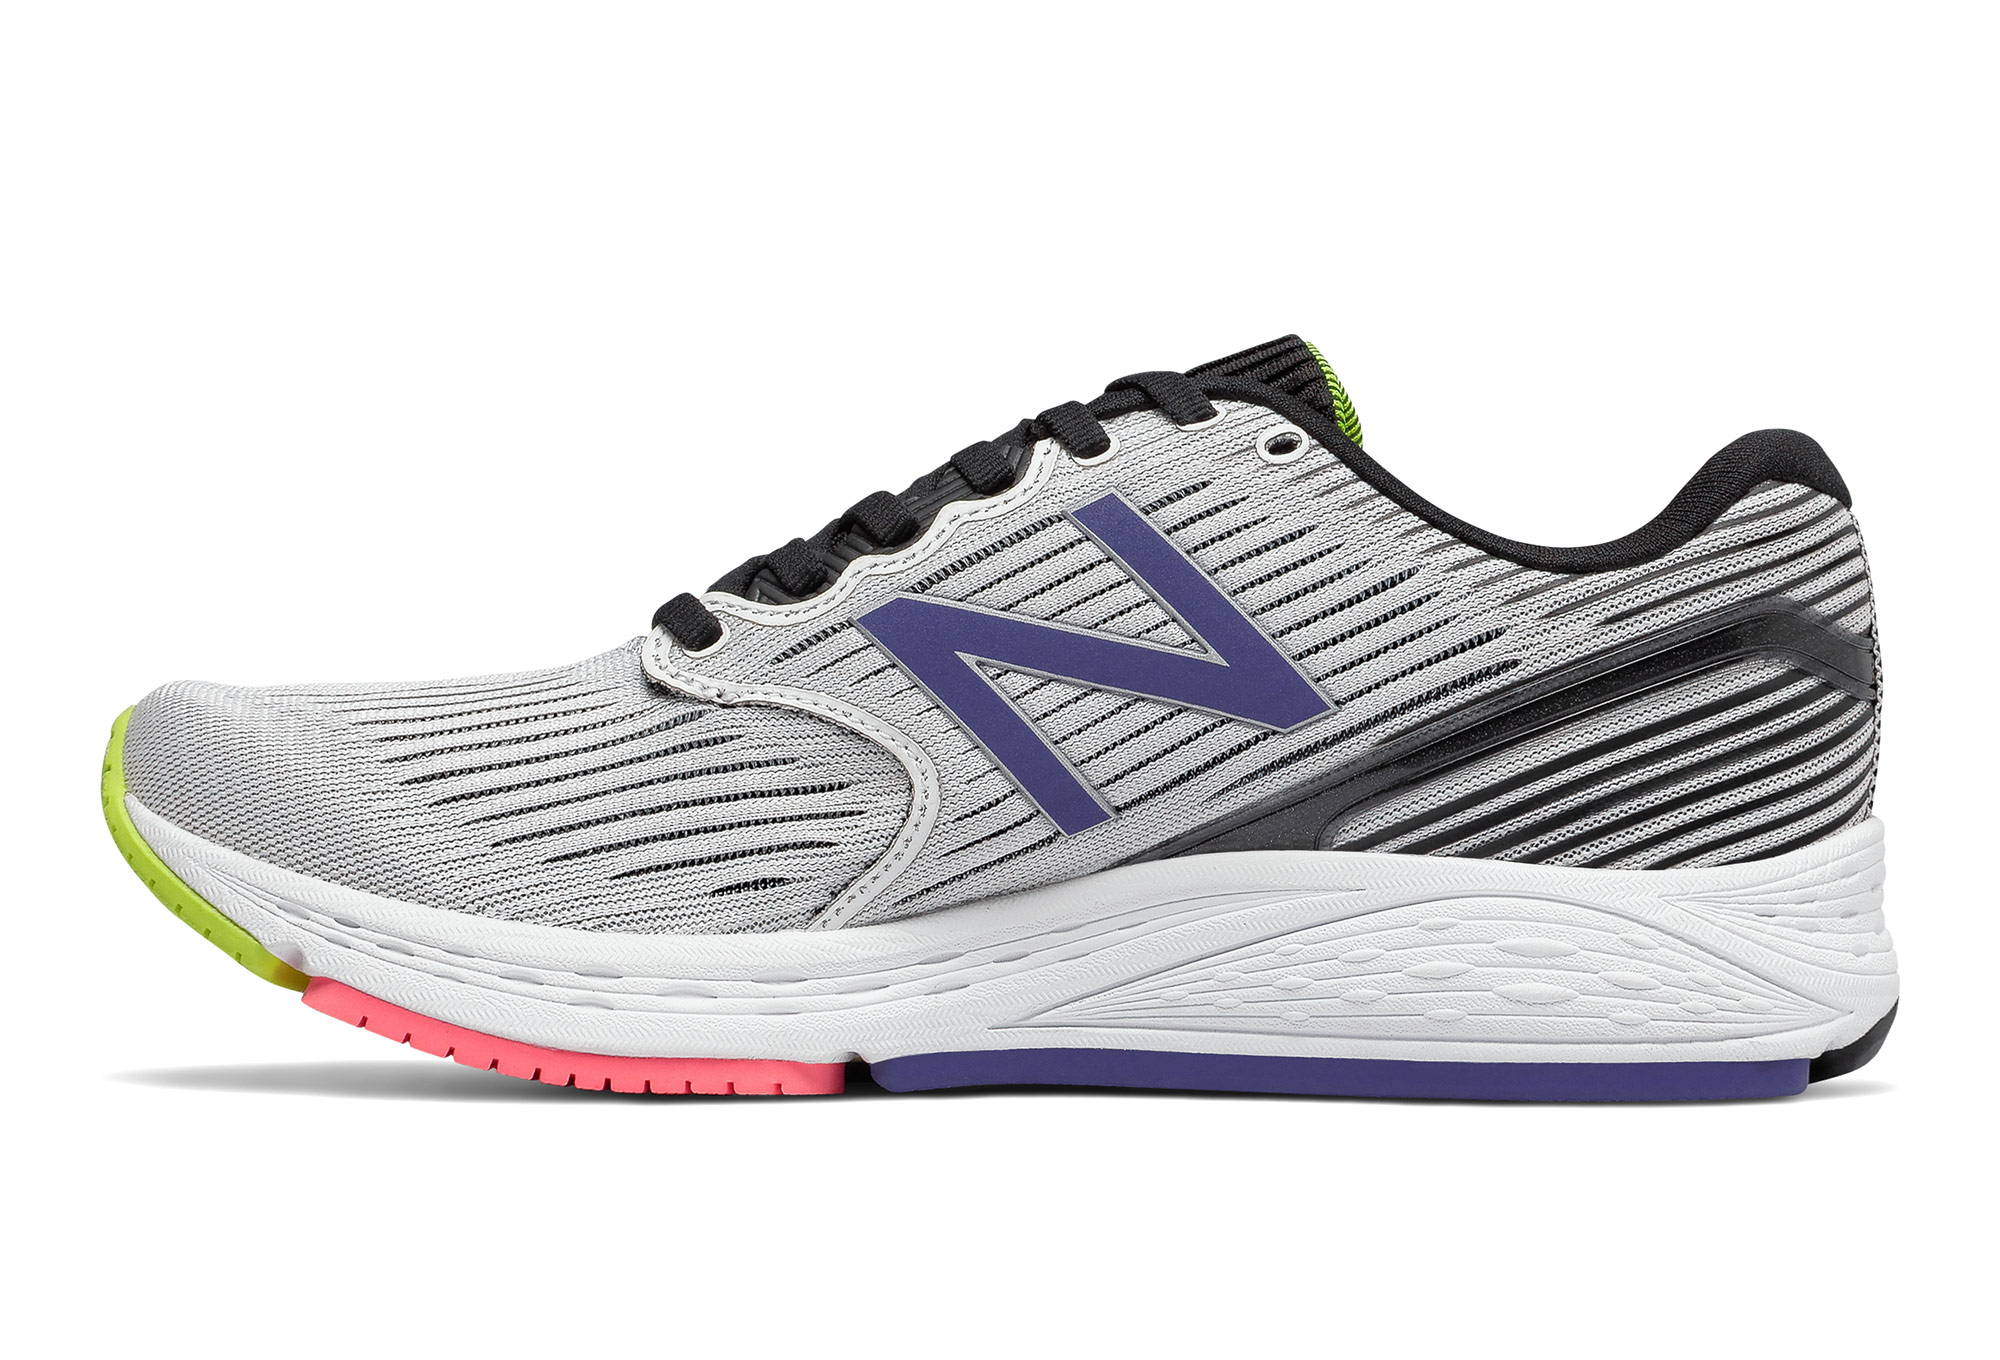 New Balance NBX 890 V6 Gris Multi color Femme